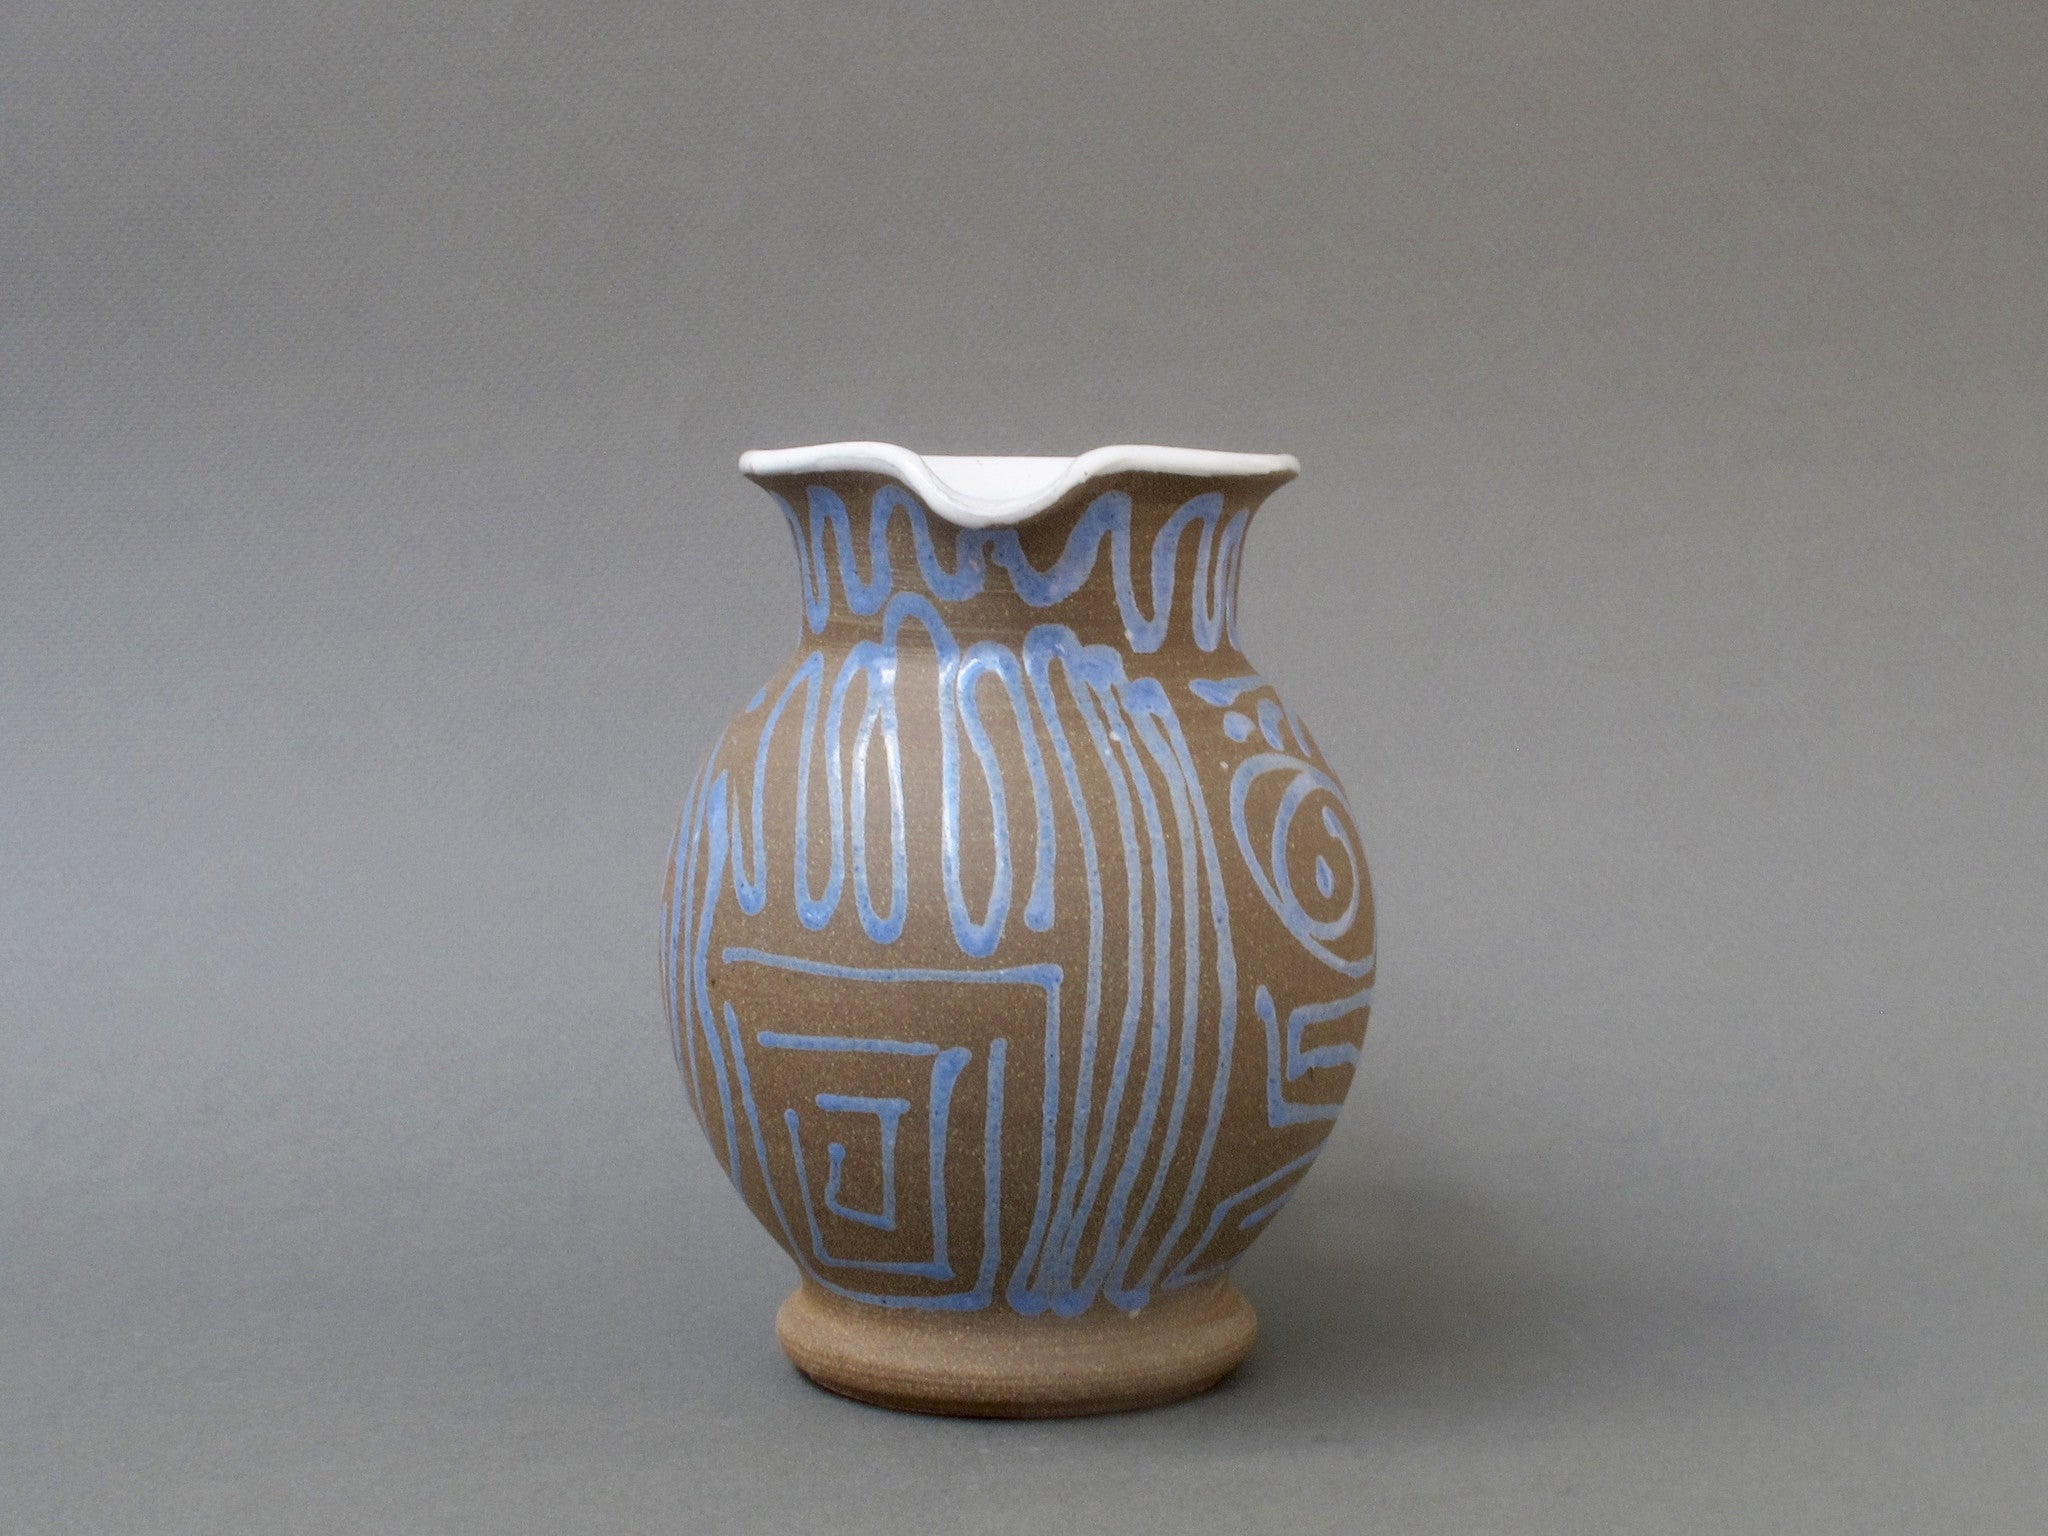 Laurent Thiry Ceramic Jug (c. 1990s)